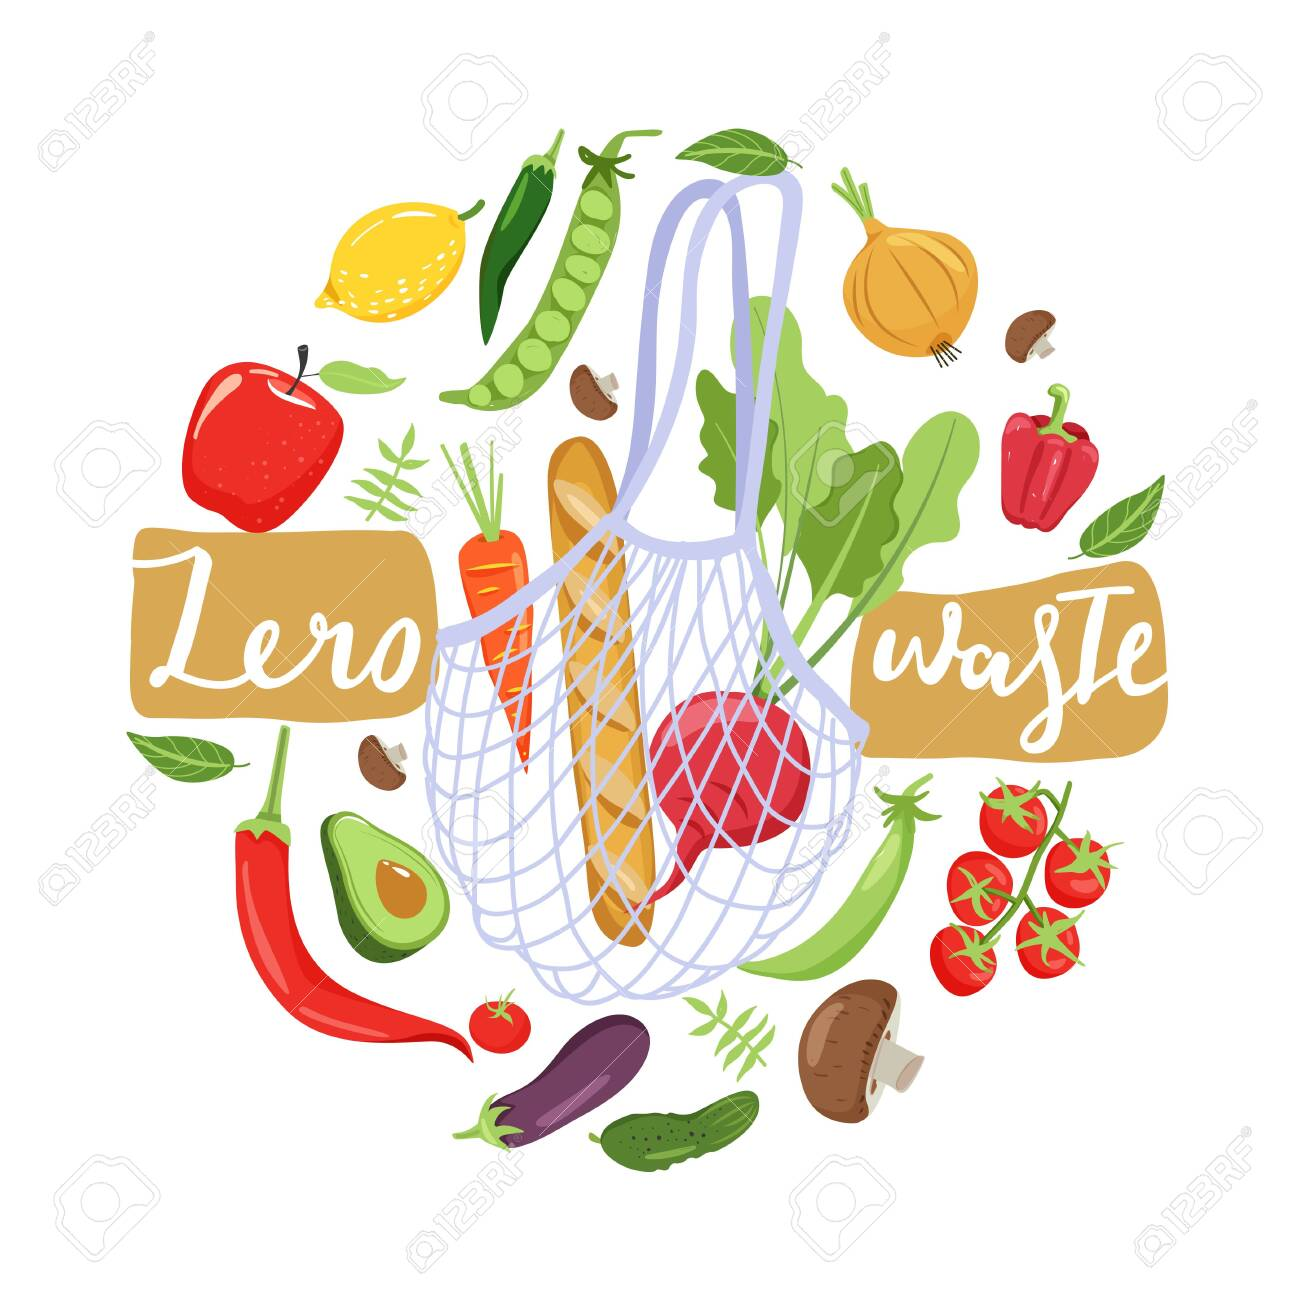 Zero waste concept. Eco bag with vegetables for eco friendly living. Circle shape composition. Vector illustration on white background. - 131671492